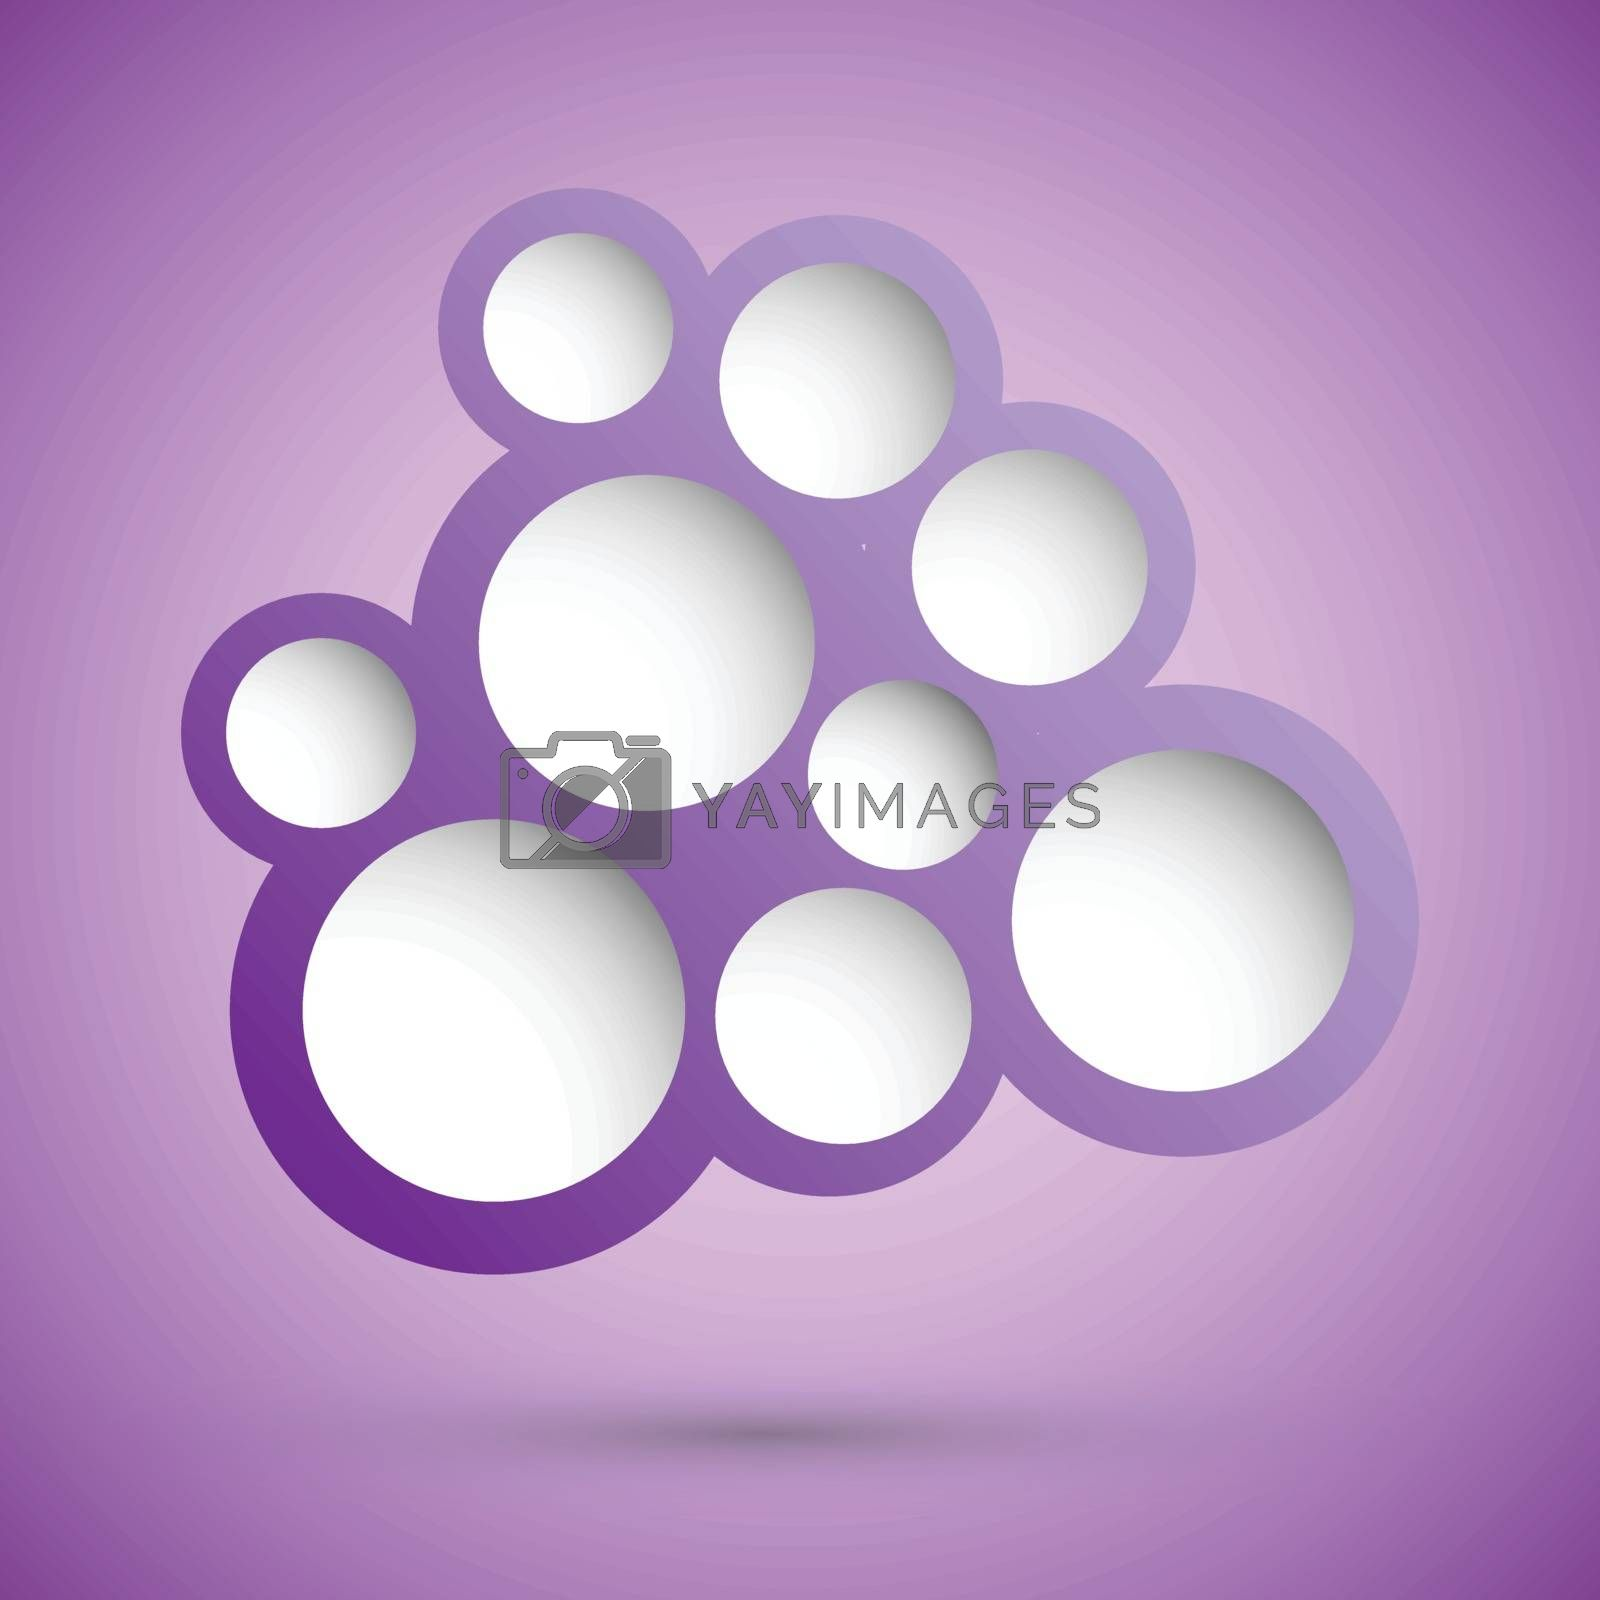 Abstract violet speech bubble background, stock vector